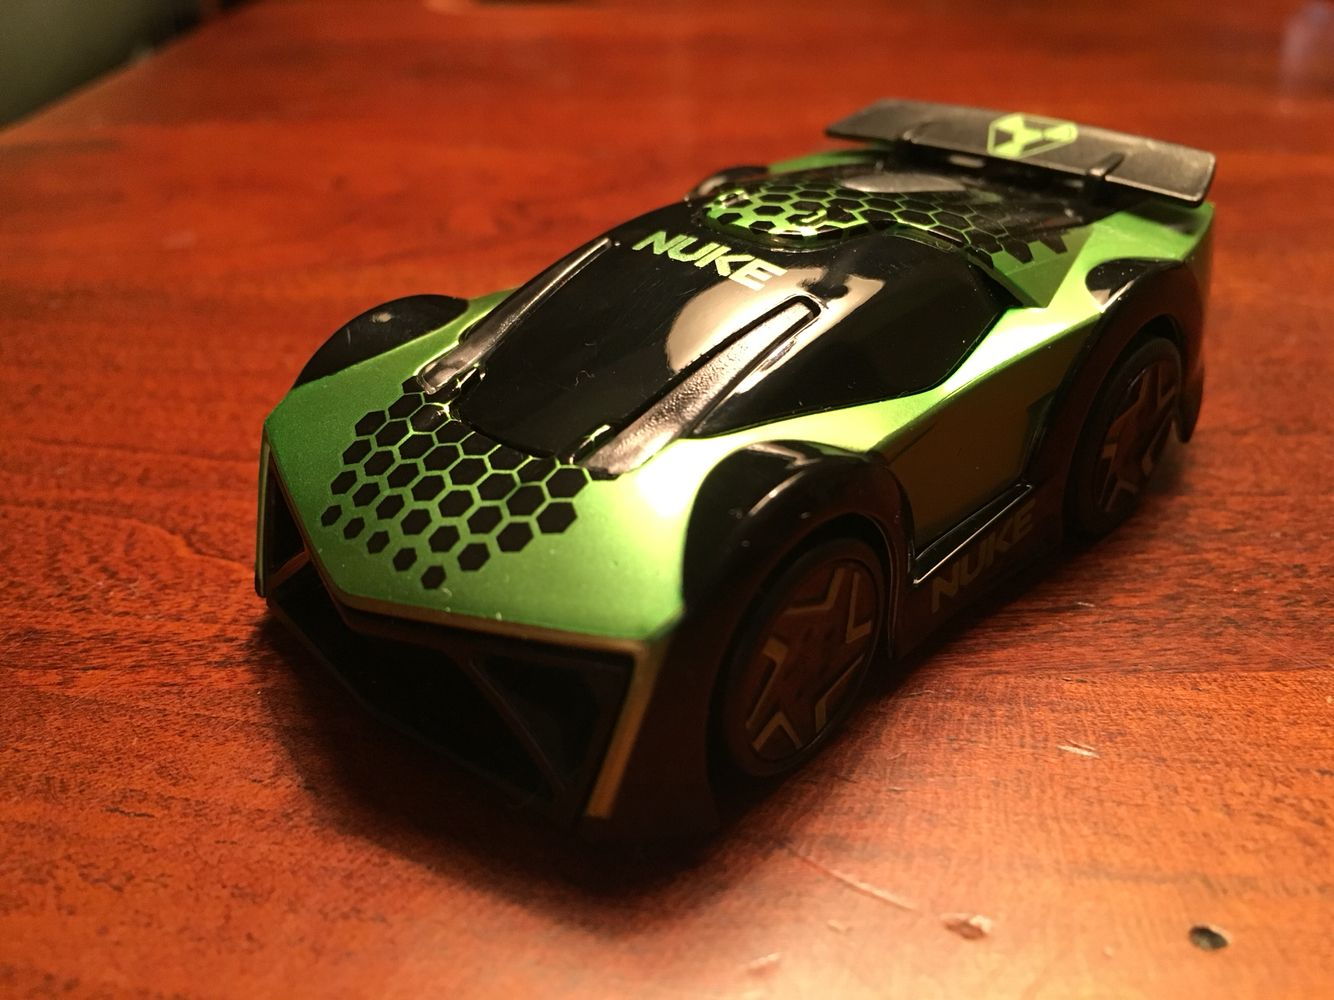 Anki Overdrive expansion car NUKE (With images) Gaming